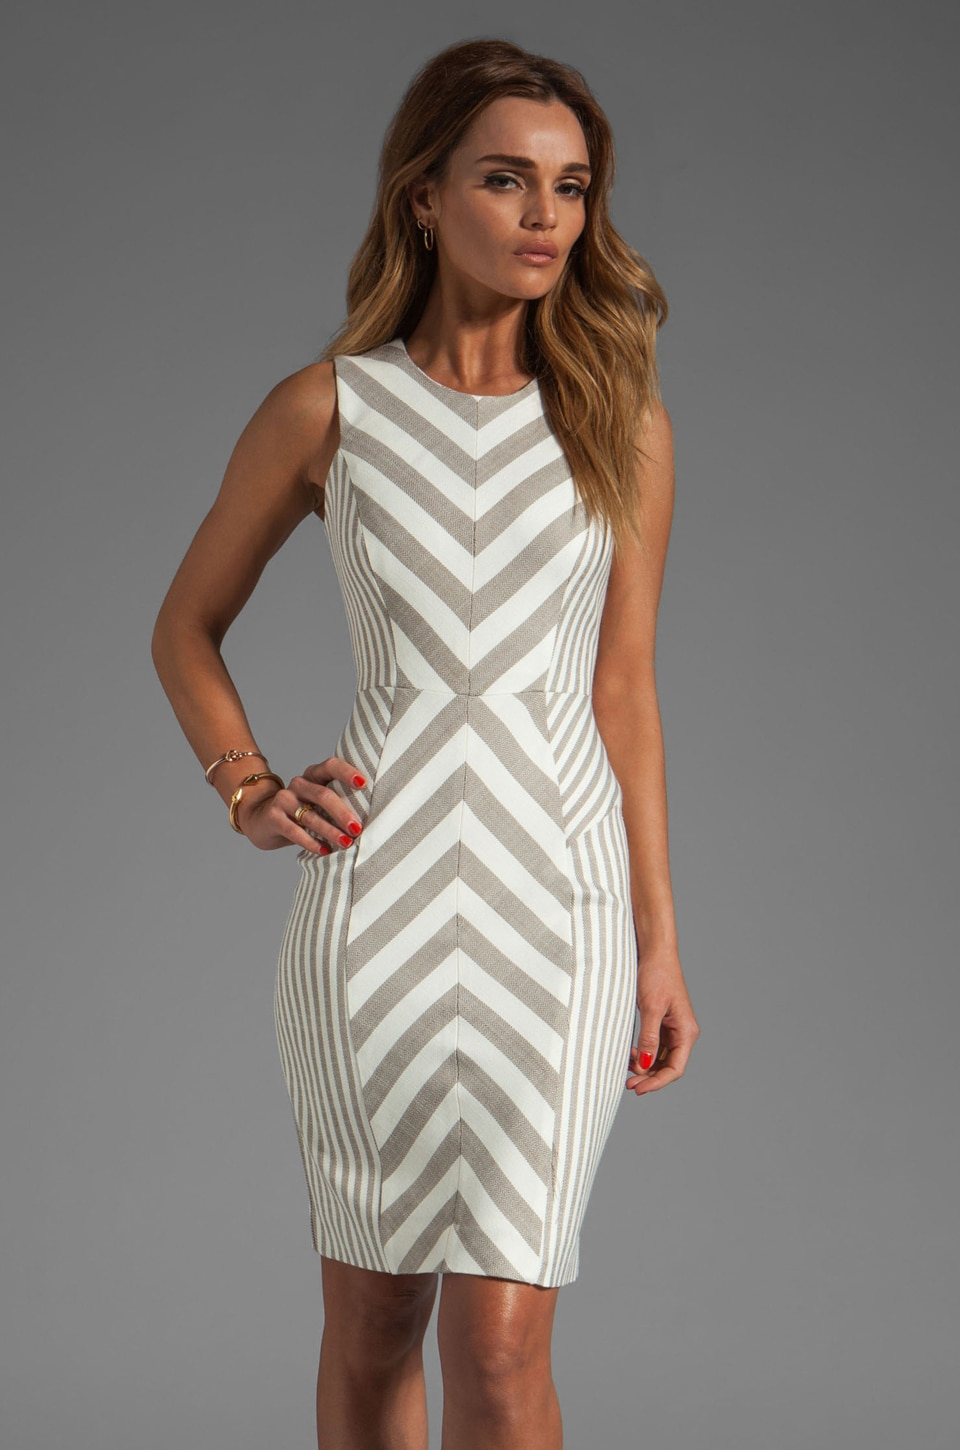 MILLY Fabulous Italian Stretch Stripes and Mini Stripes Tank Dress in Cork